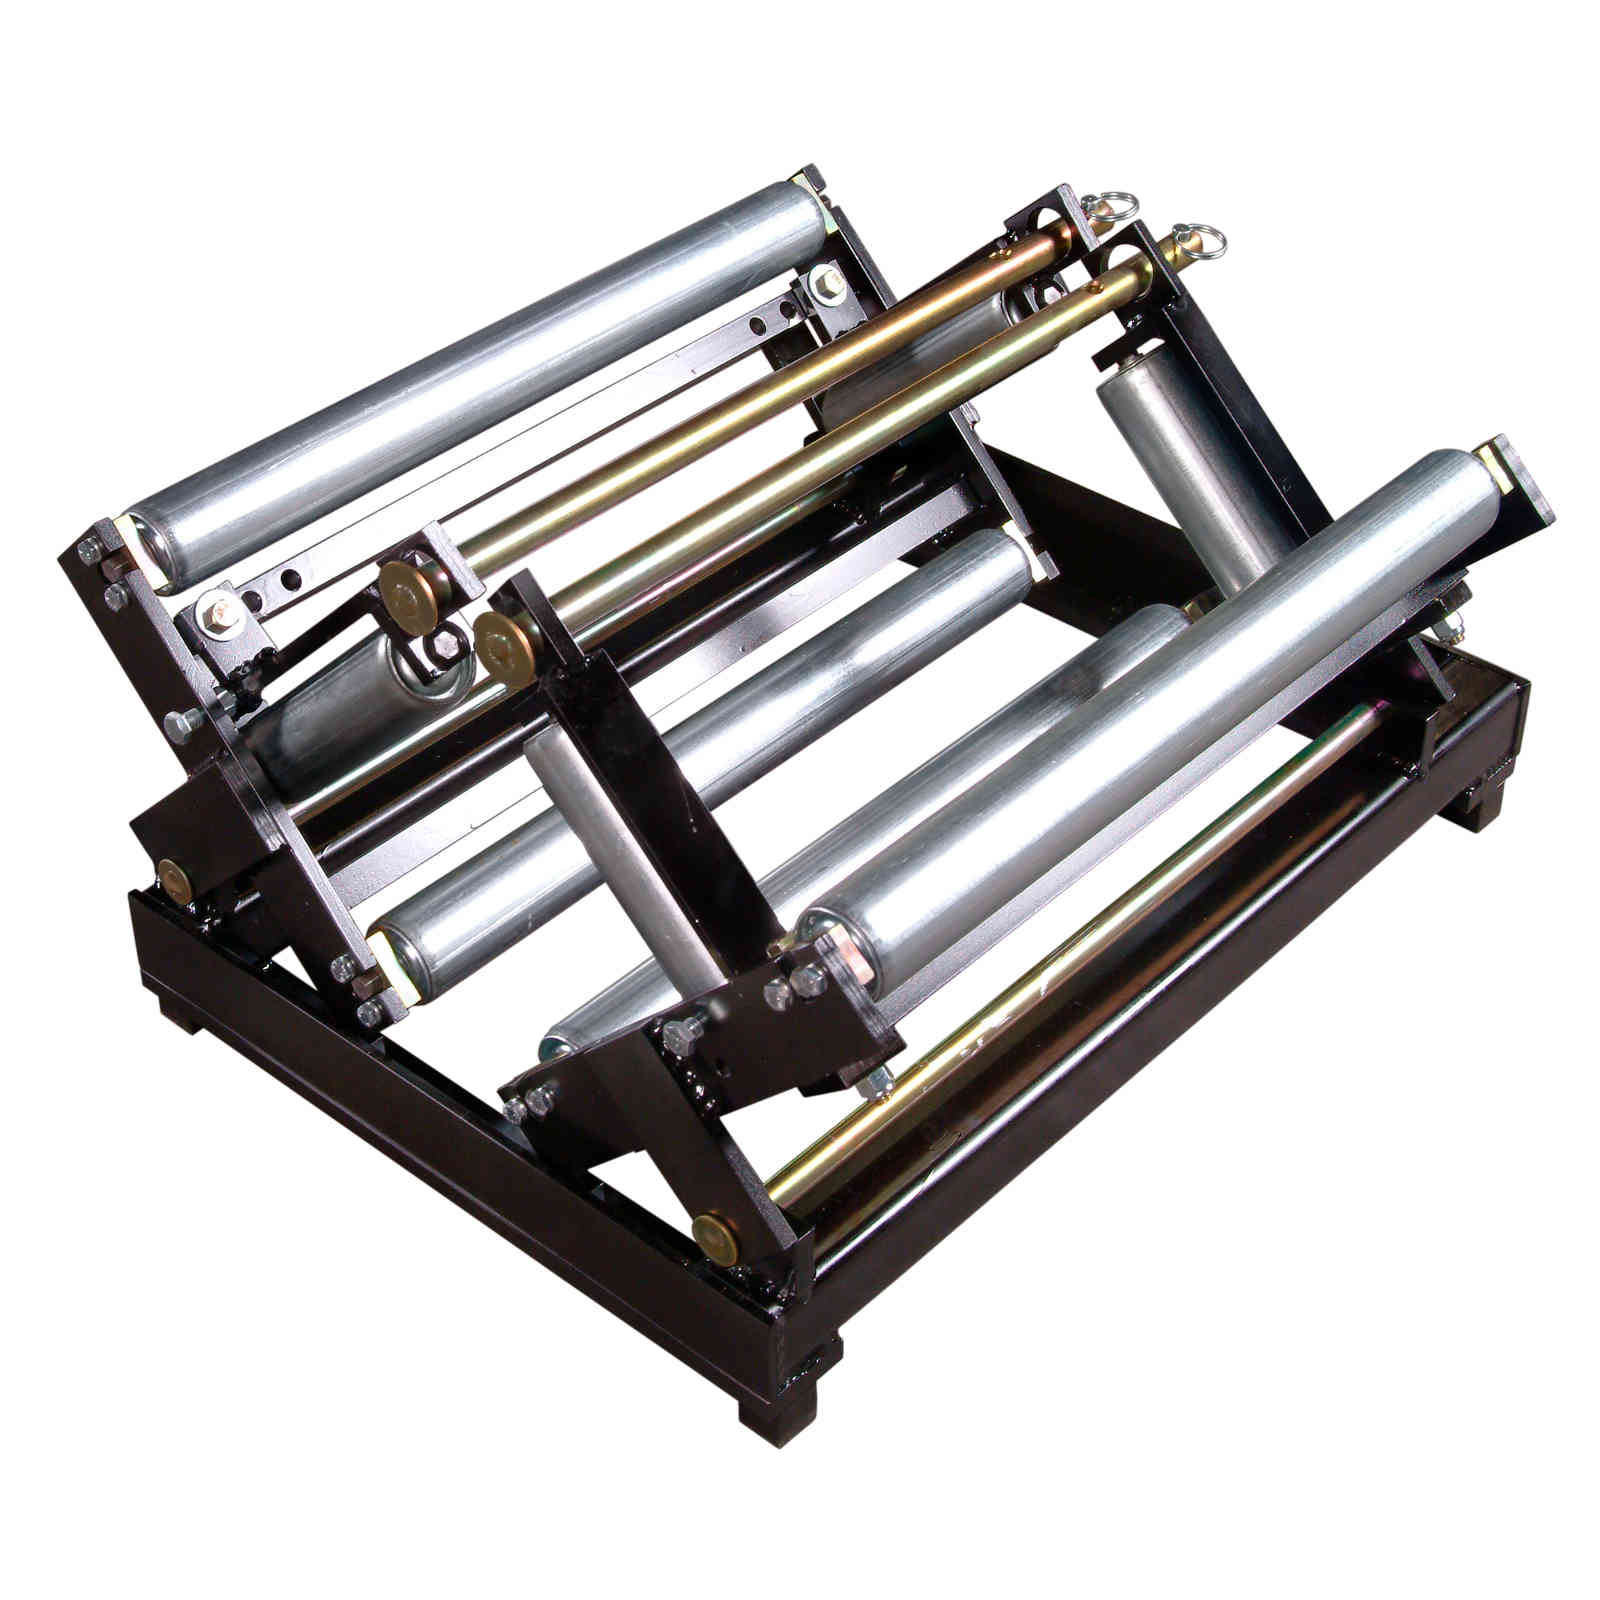 "New Tech 5"" or 6"" Machine Coil Cradle"